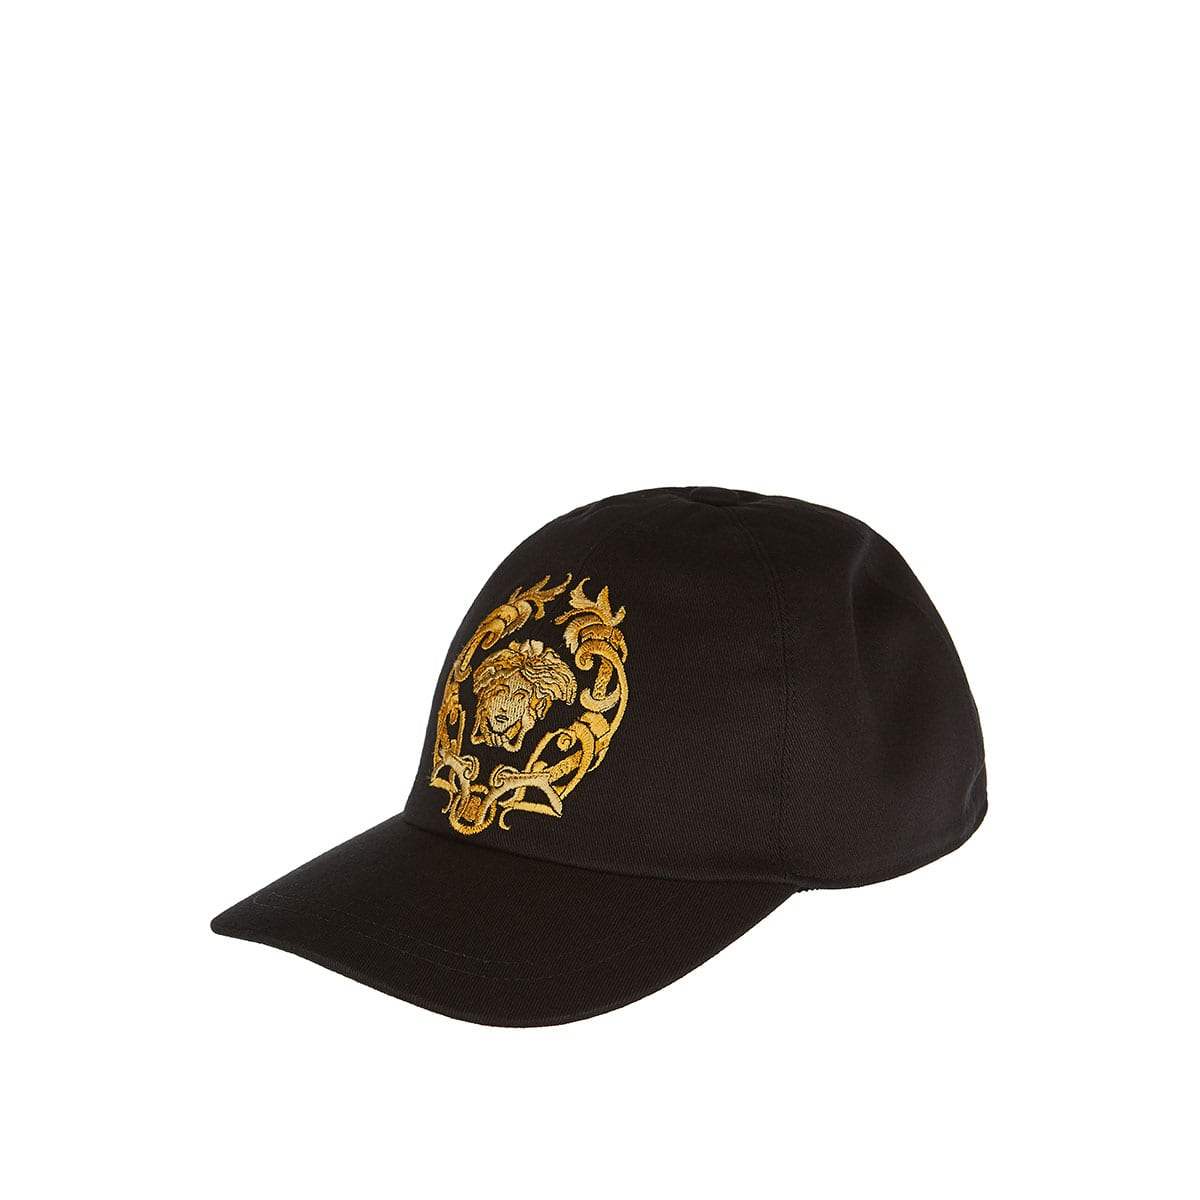 Medusa embroidered cap